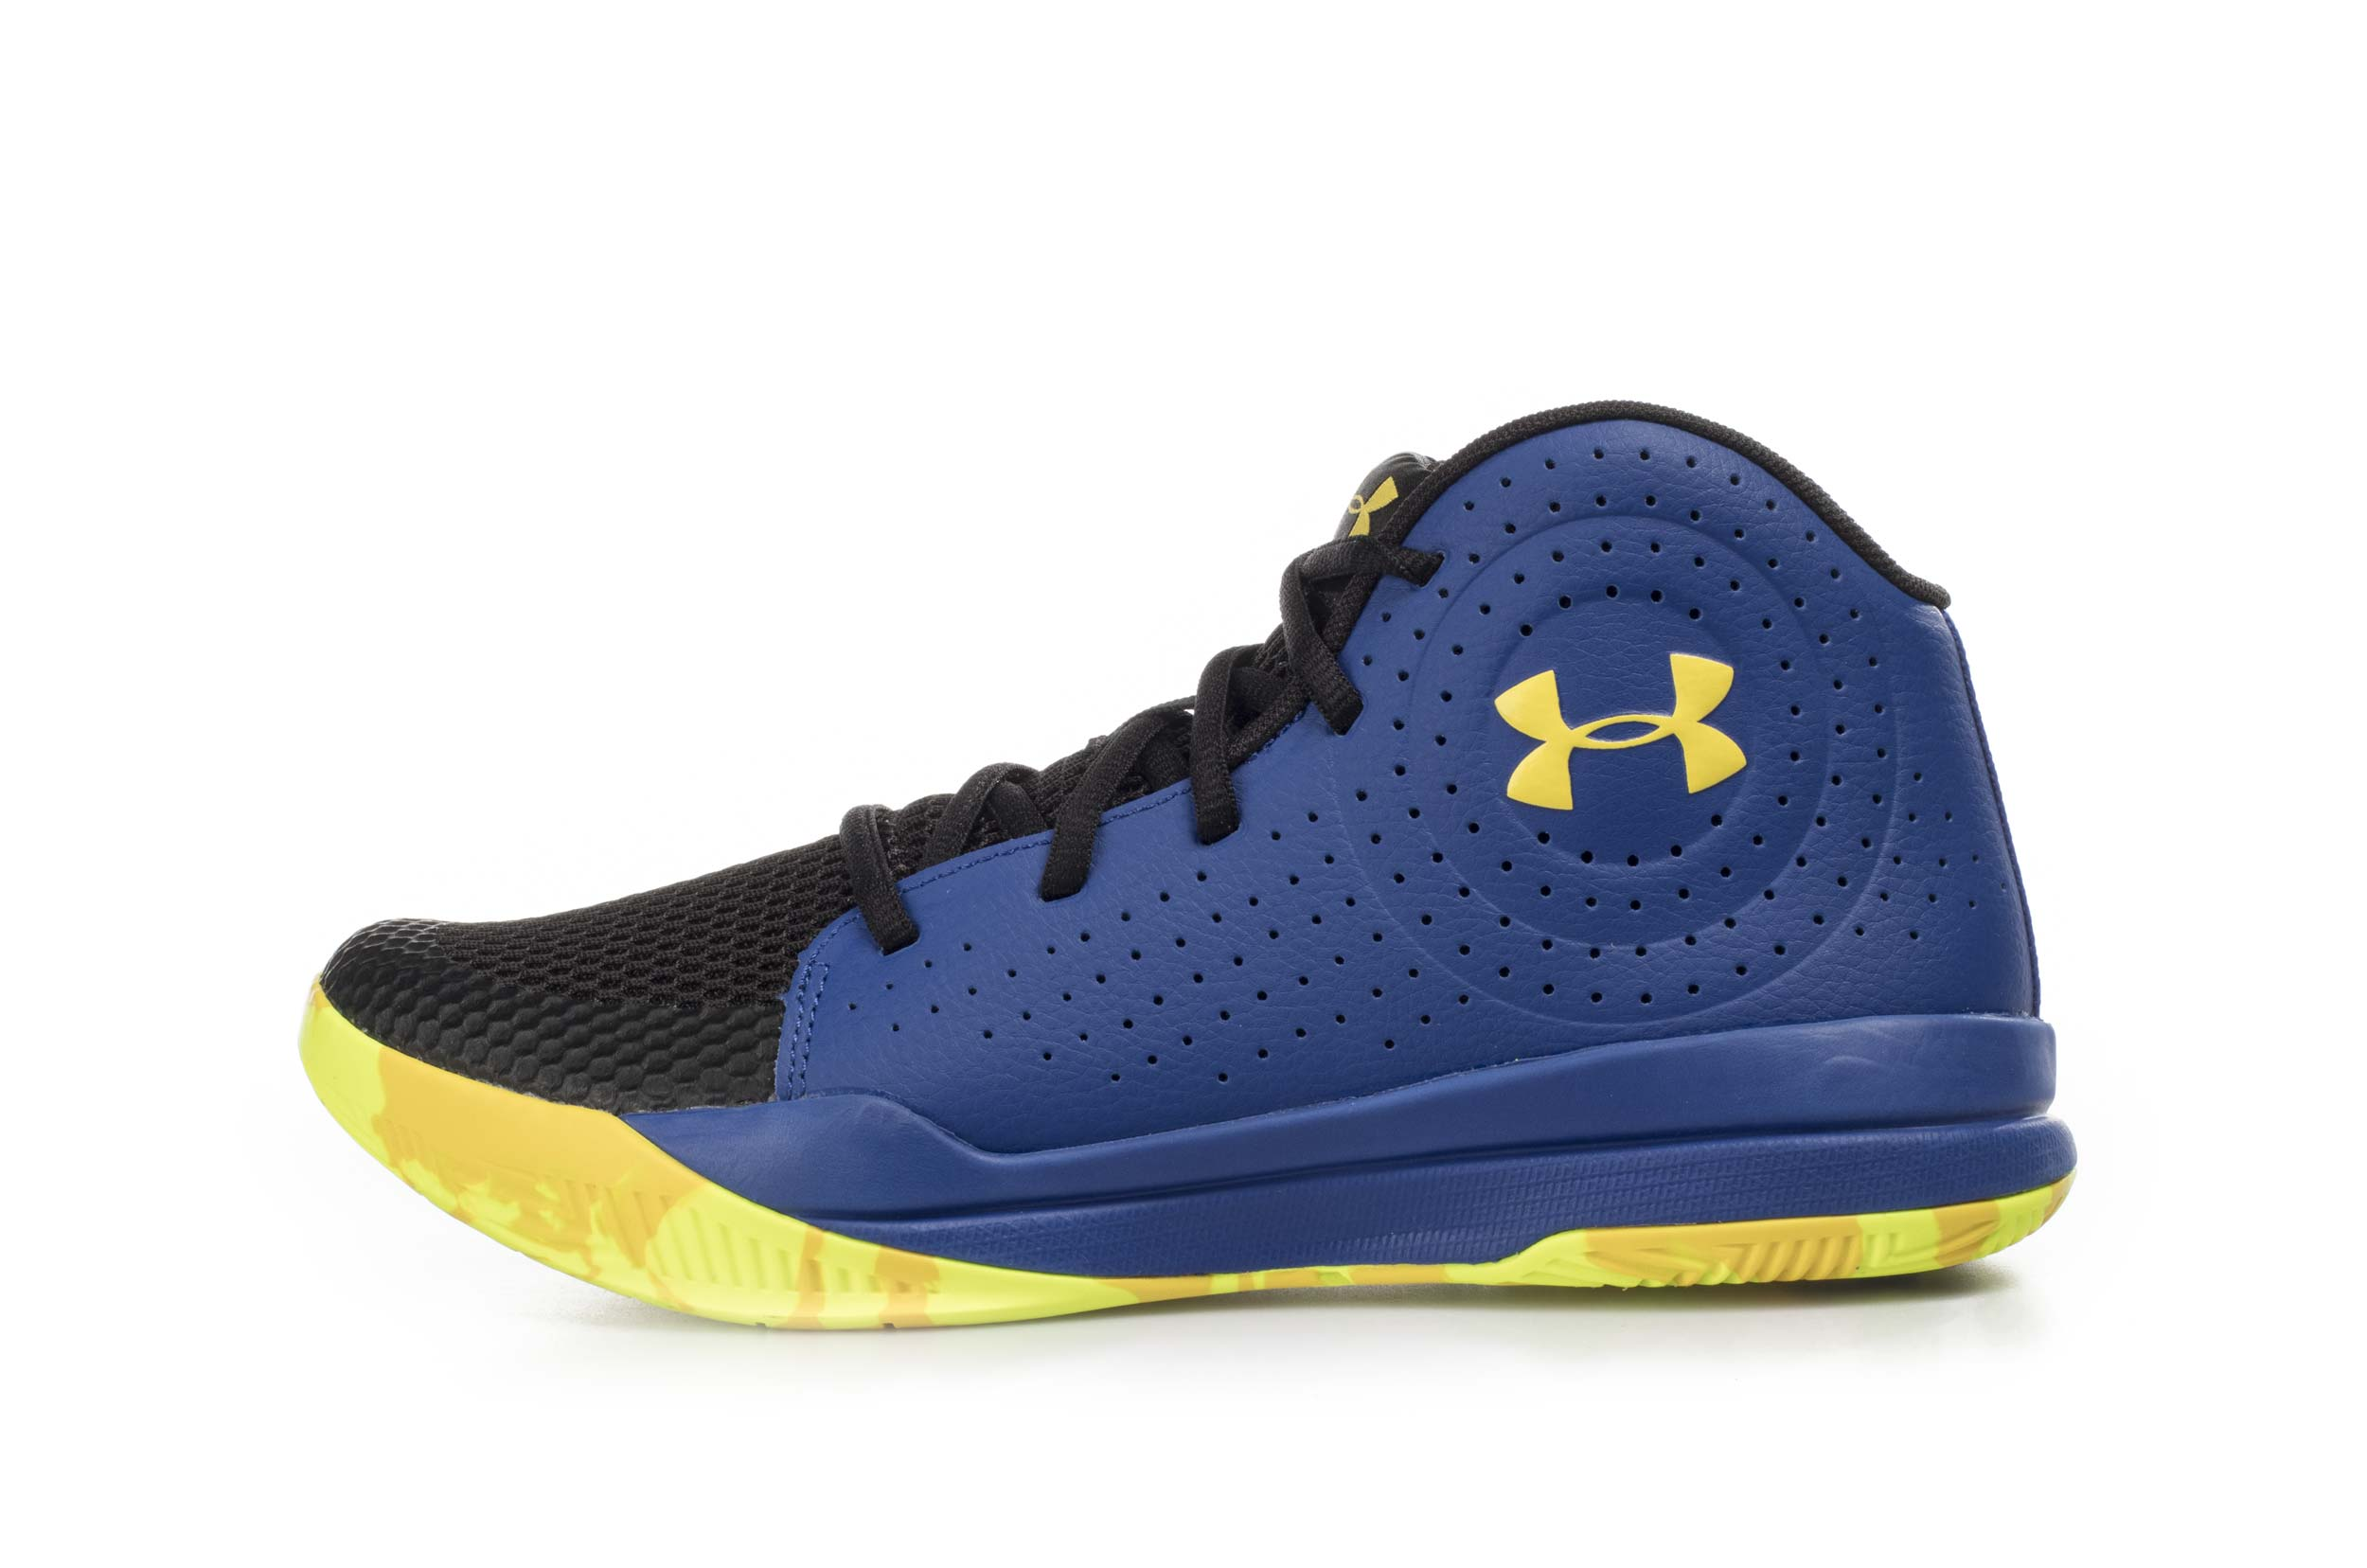 UNDER ARMOUR GS JET 2019 3022121-404 Ρουά